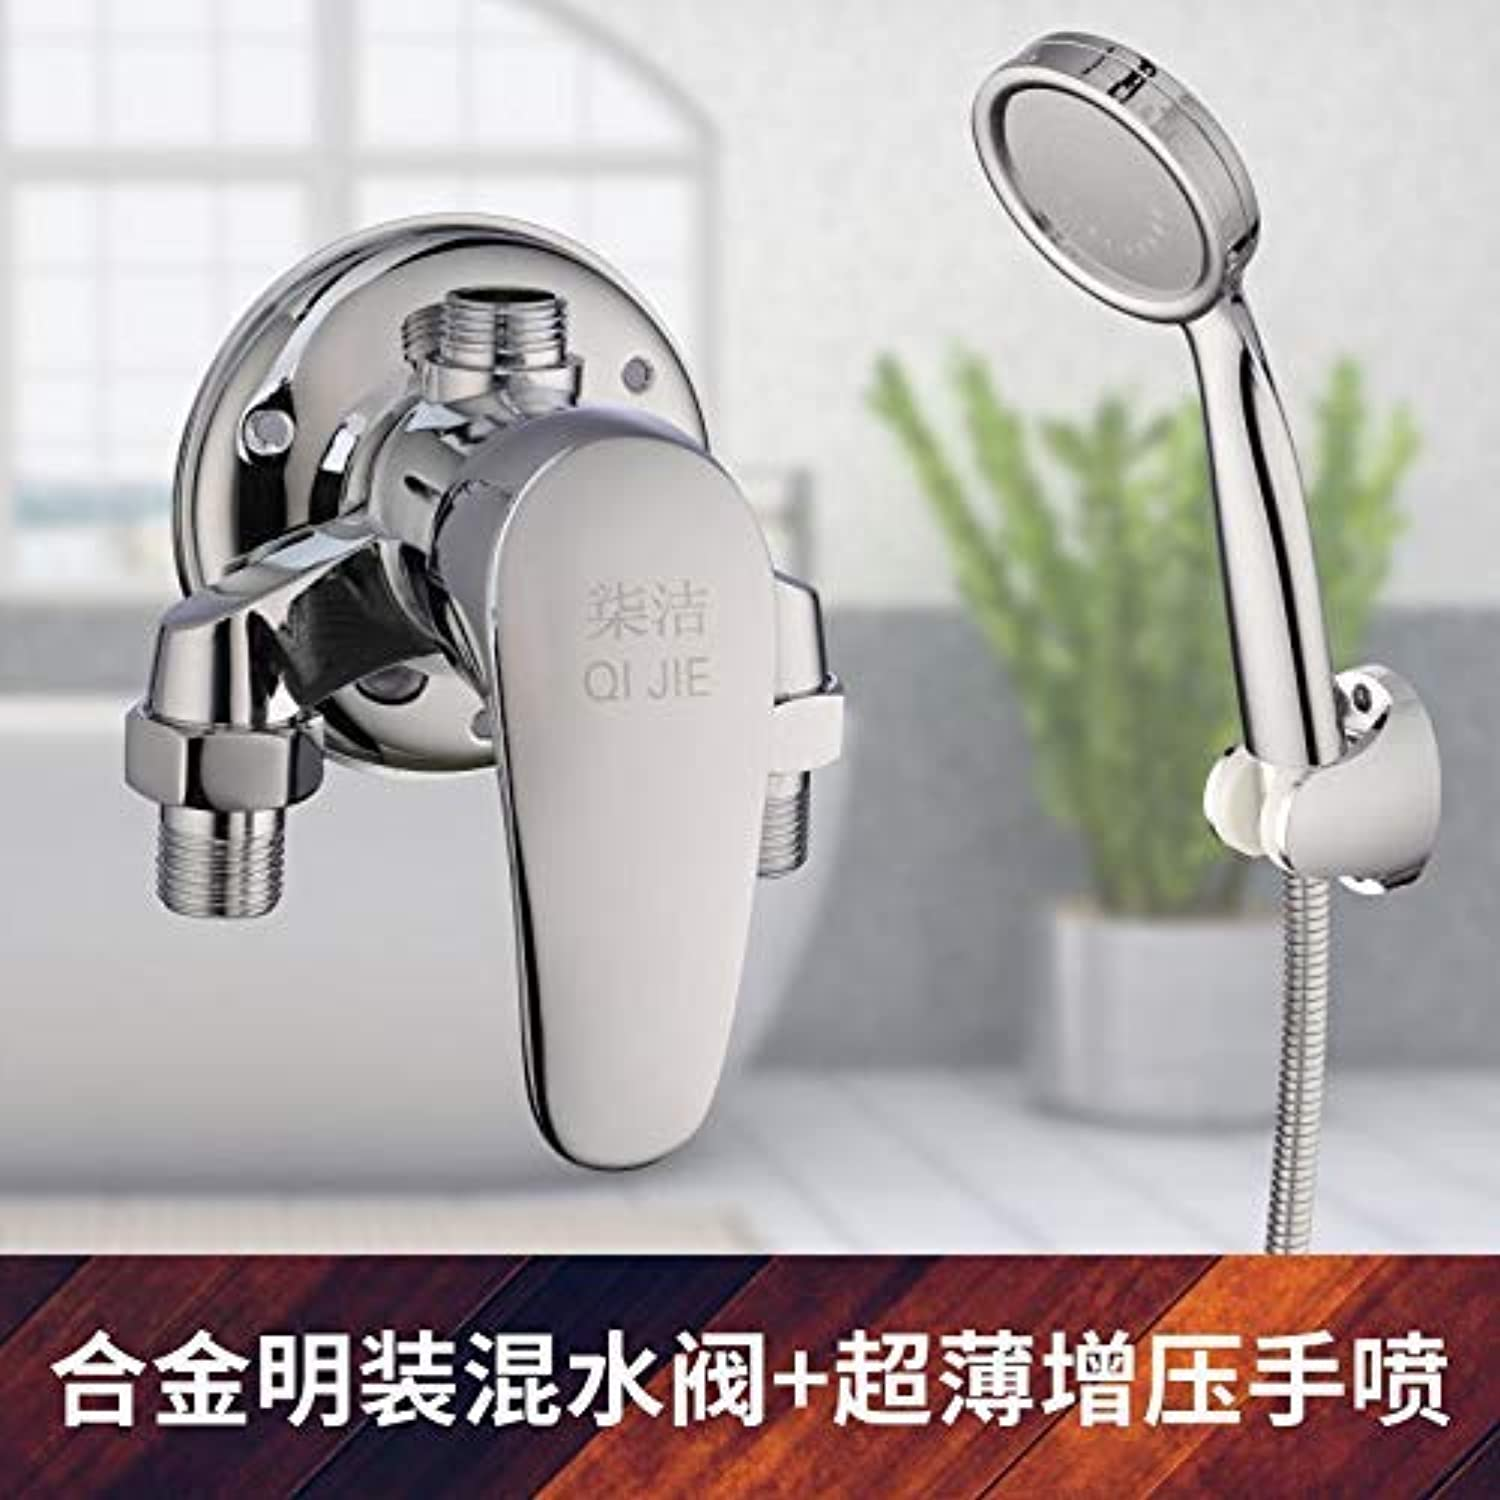 SEBAS HOME Mixing valve wall mounted shower faucet copper solar wall mounted shower faucet mixing hot and cold shower set switch, copper mixing valve N (color   A)